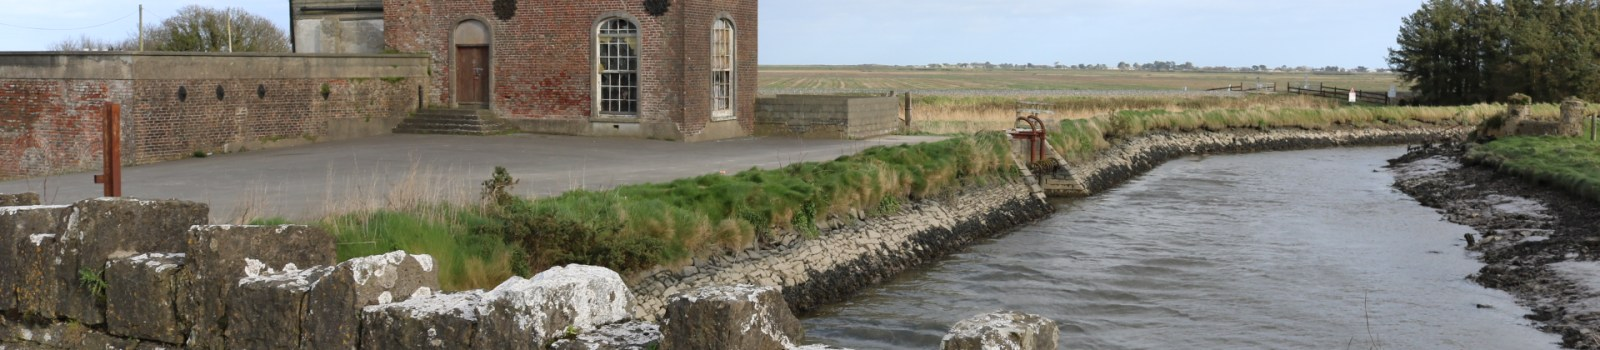 South Slob Pump House, Wexford